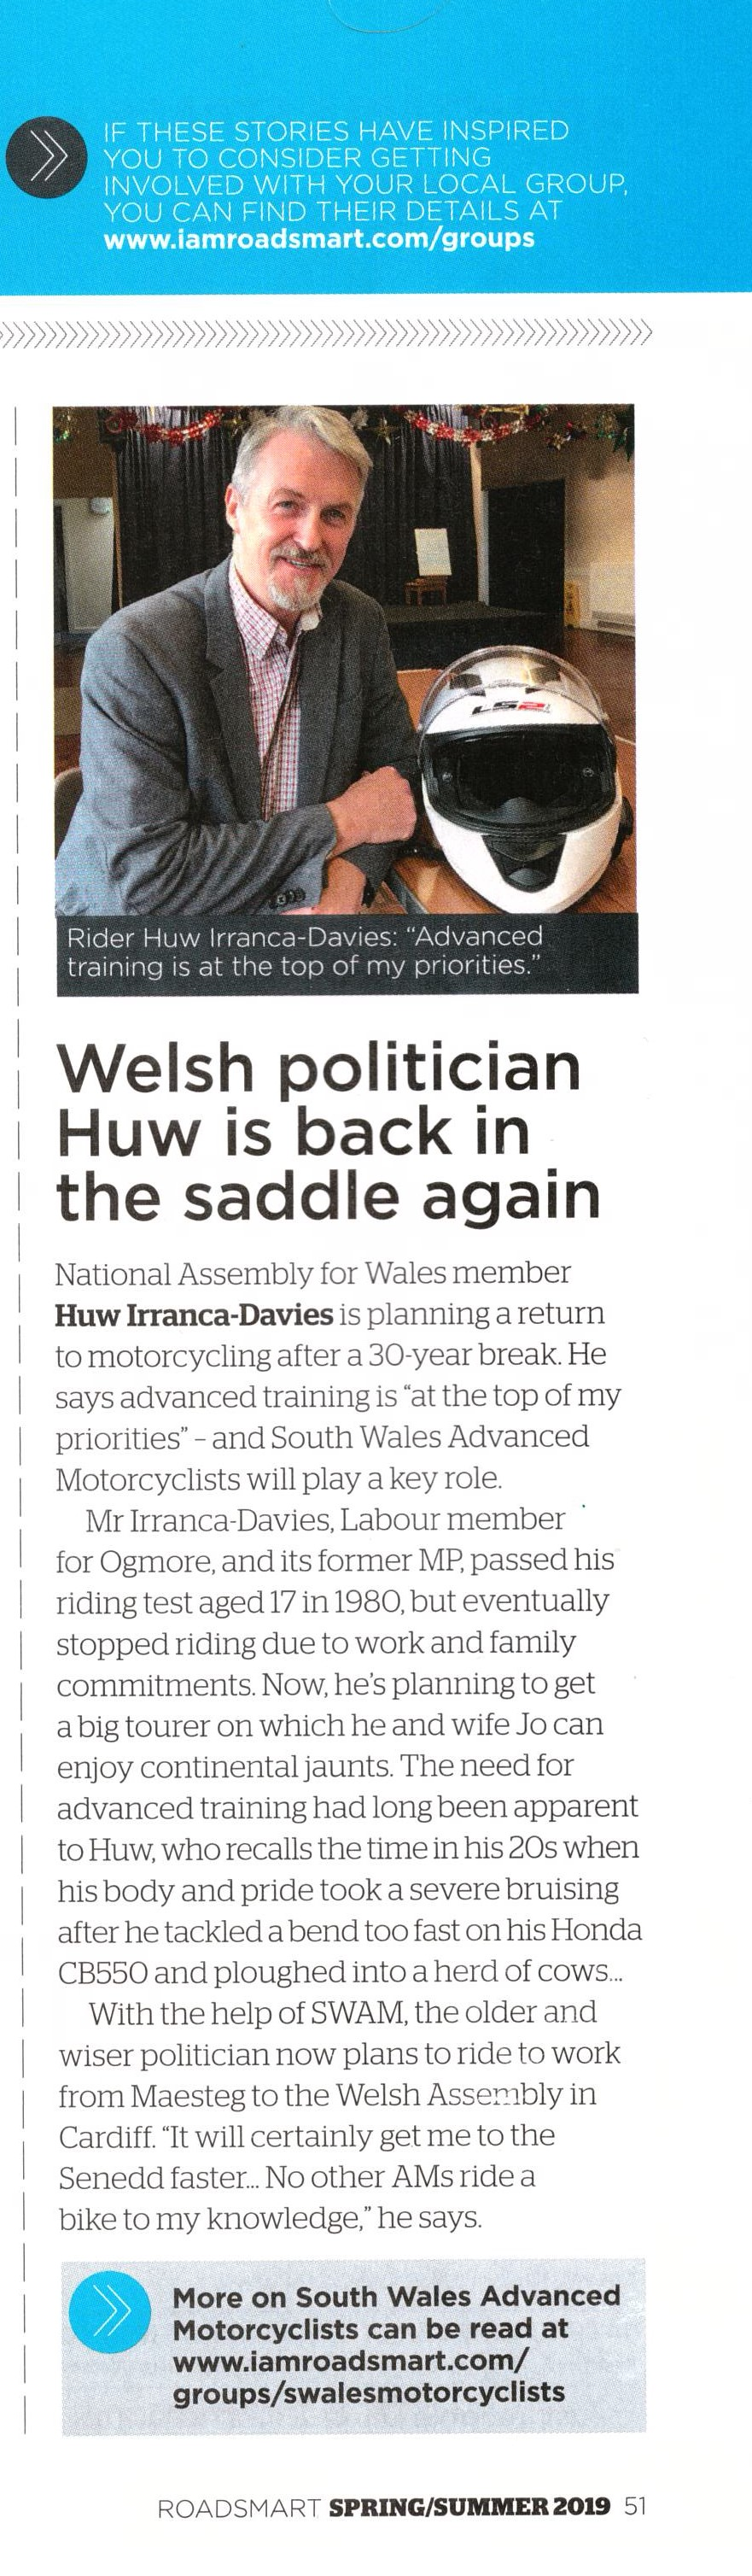 Article-Huw Irranca-Davies in saddle